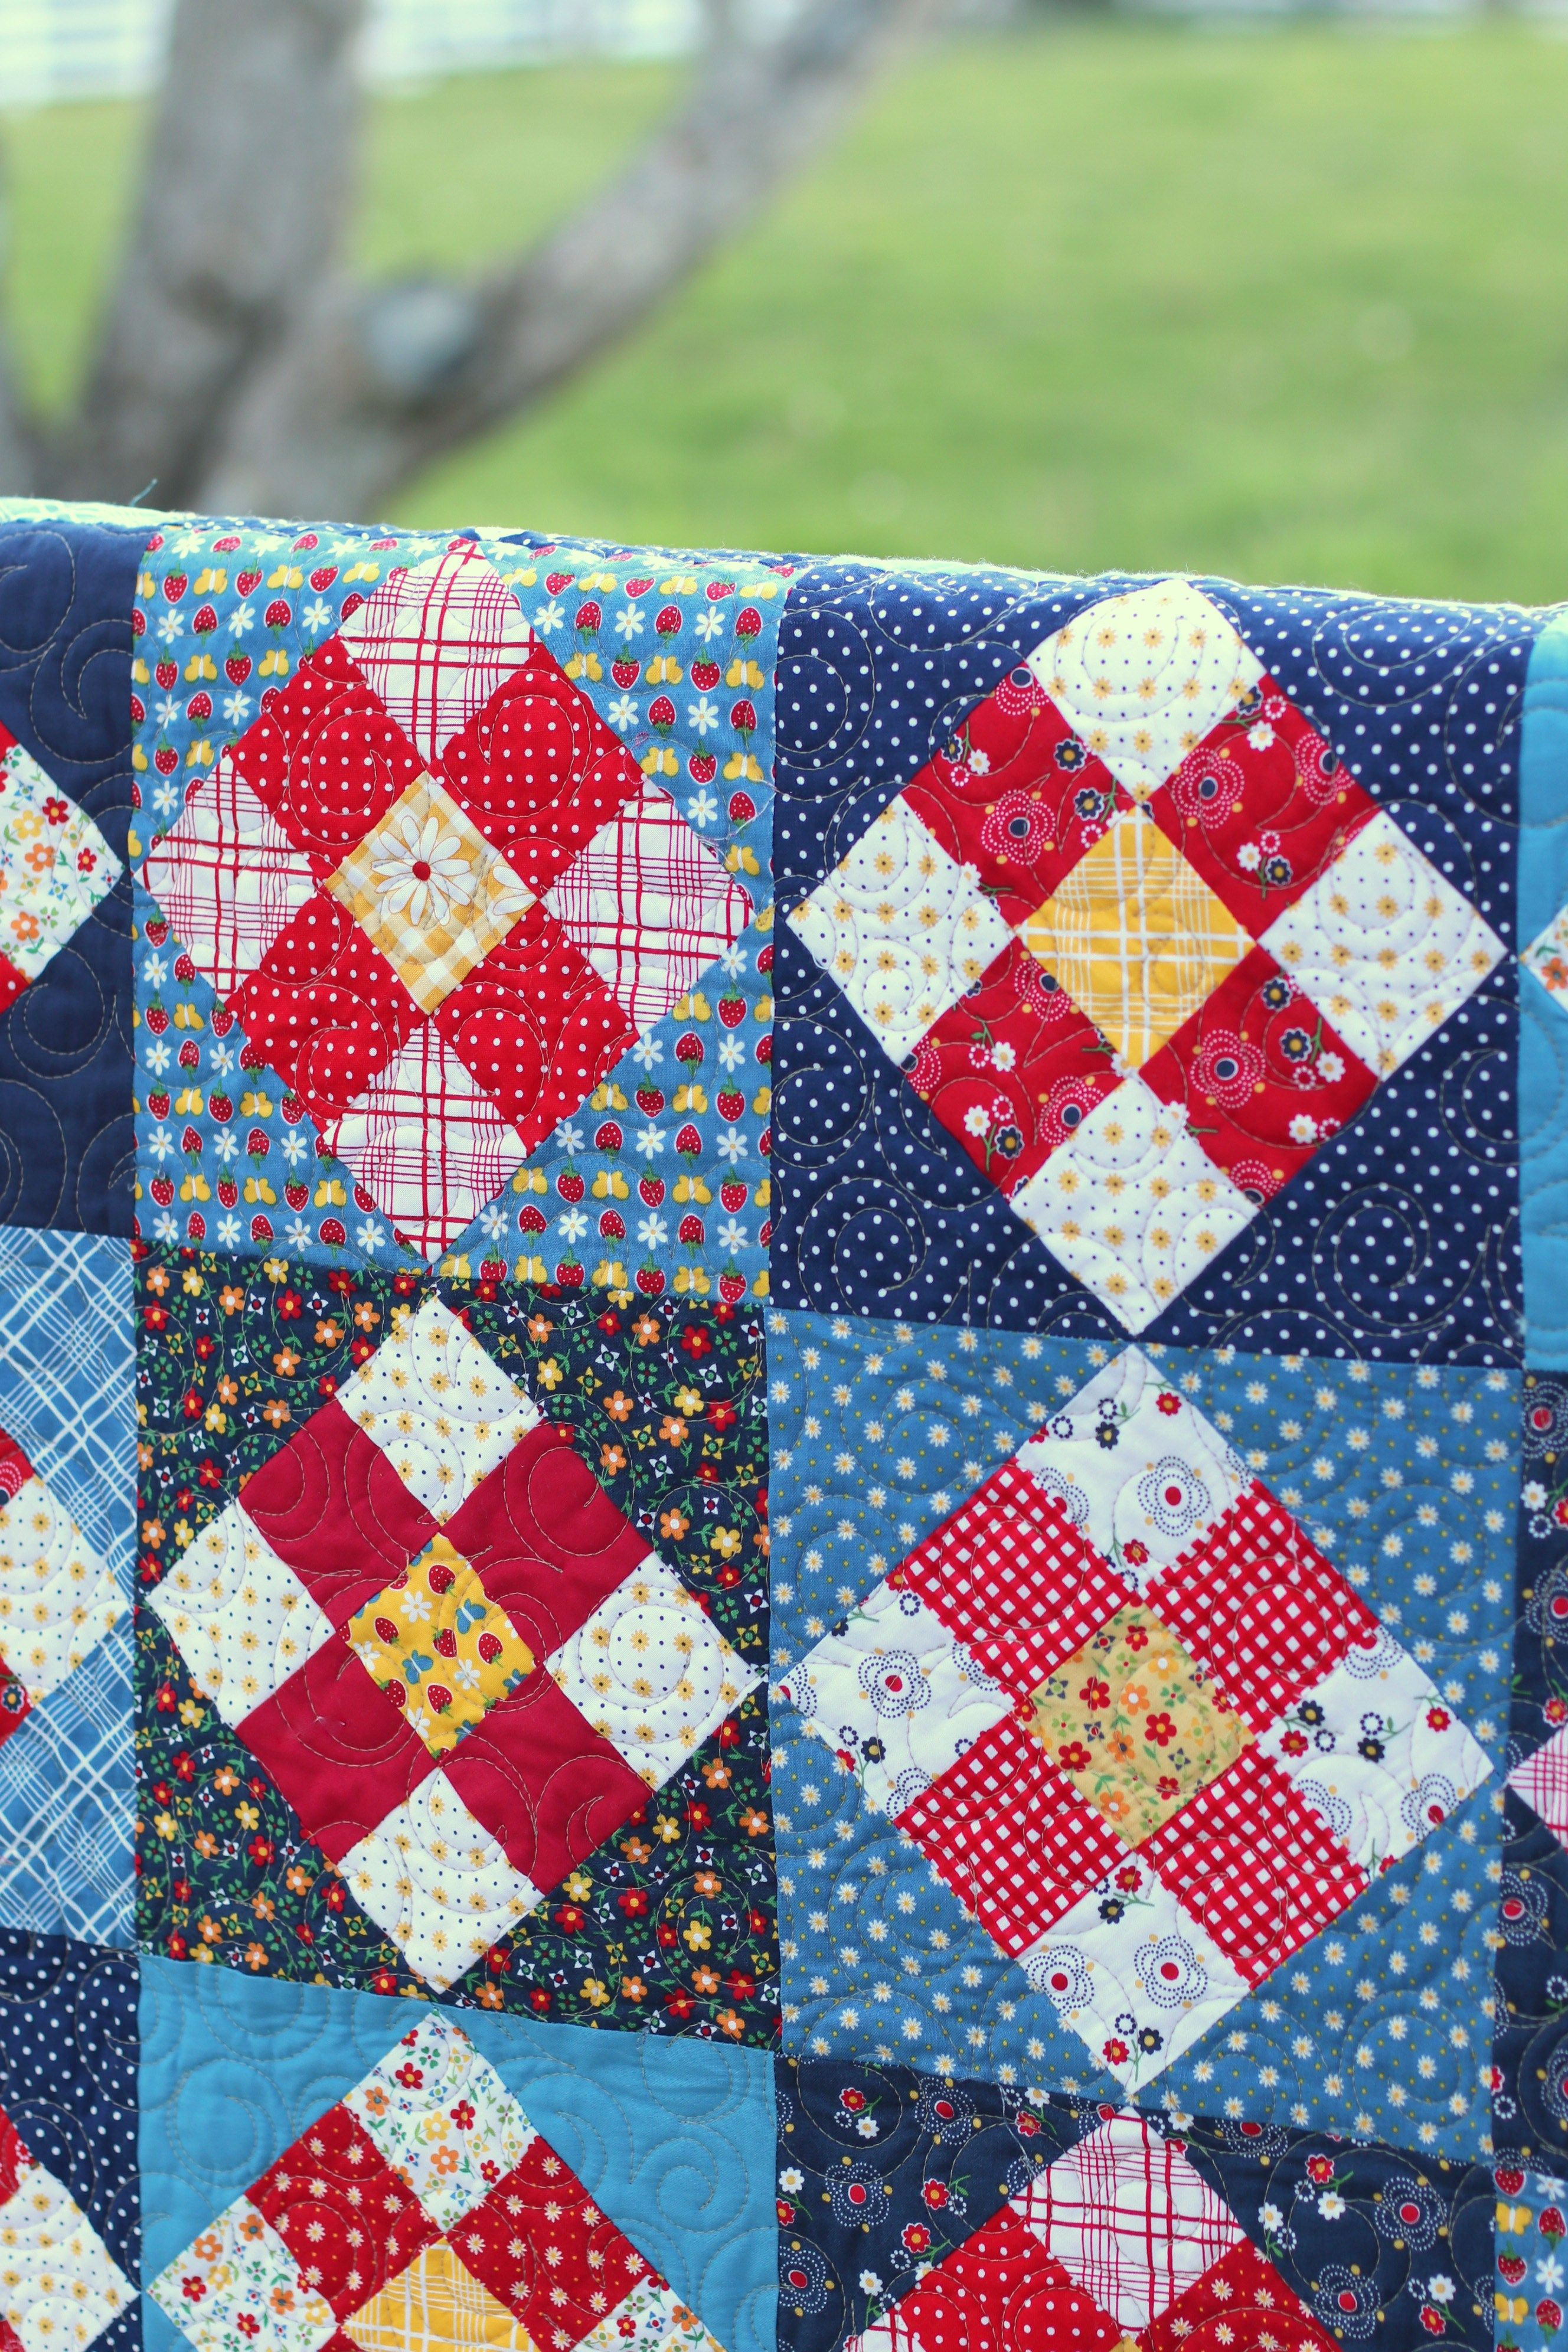 New Gingham Girls Pattern A Stitch In Time Diary Of A Quilter A Quilt Blog Gingham Quilt Quilts Colorful Quilts